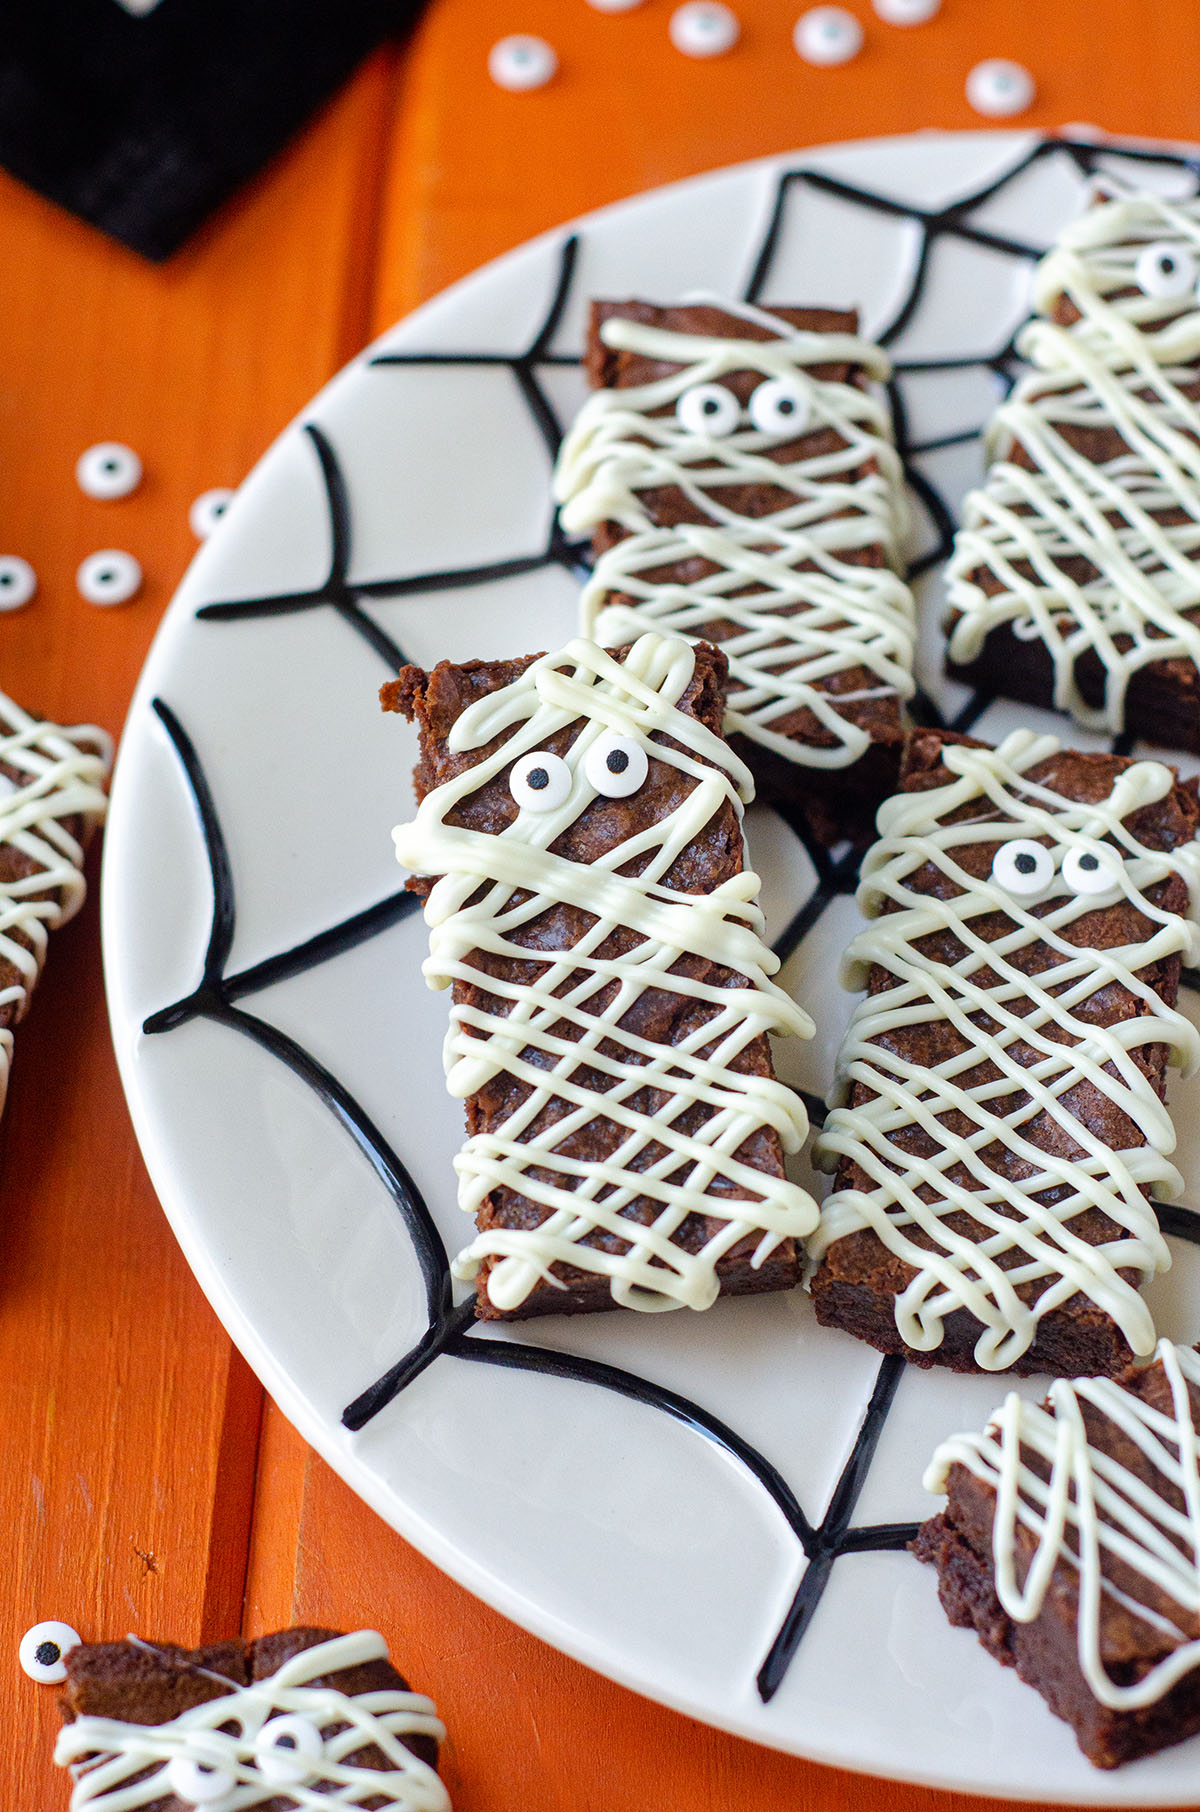 Turn ordinary from-scratch brownies into a seasonally spooky treat! With white chocolate and candy eyeballs, you'll be the most popular monster at the mash!